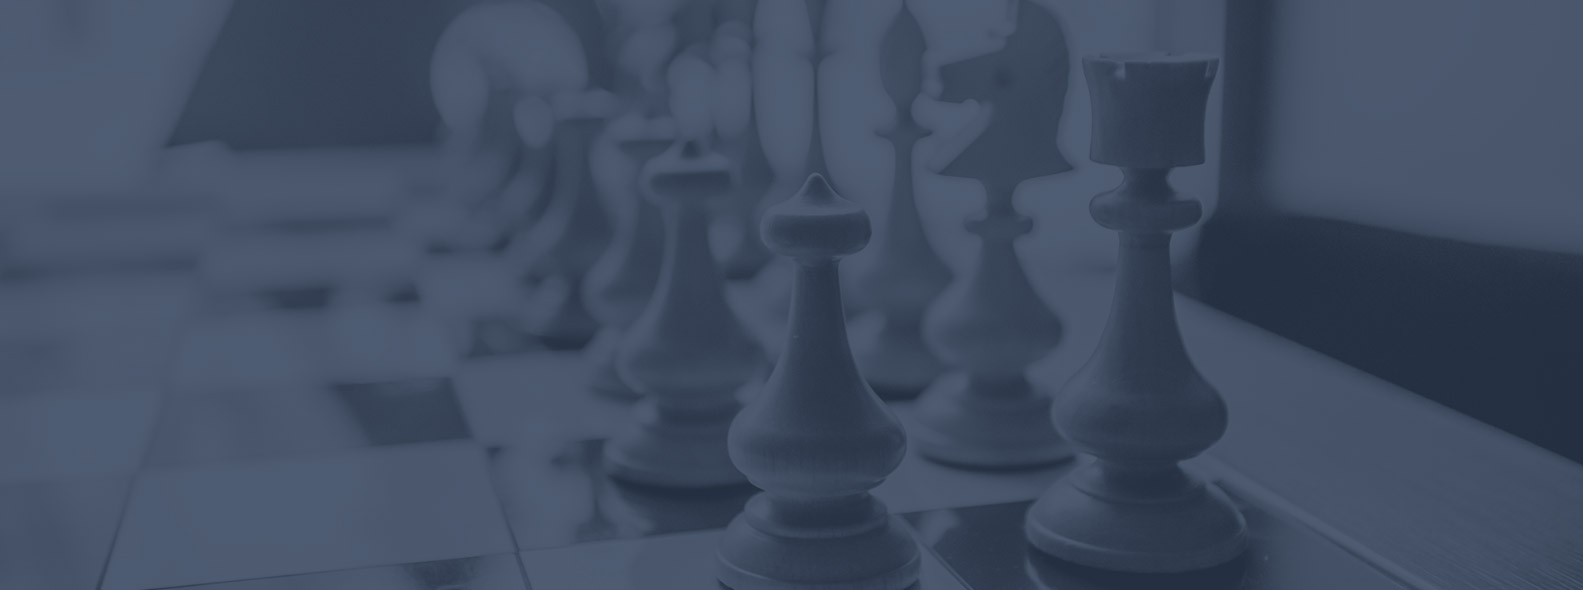 Chess pieces representing improving production processes with due diligence